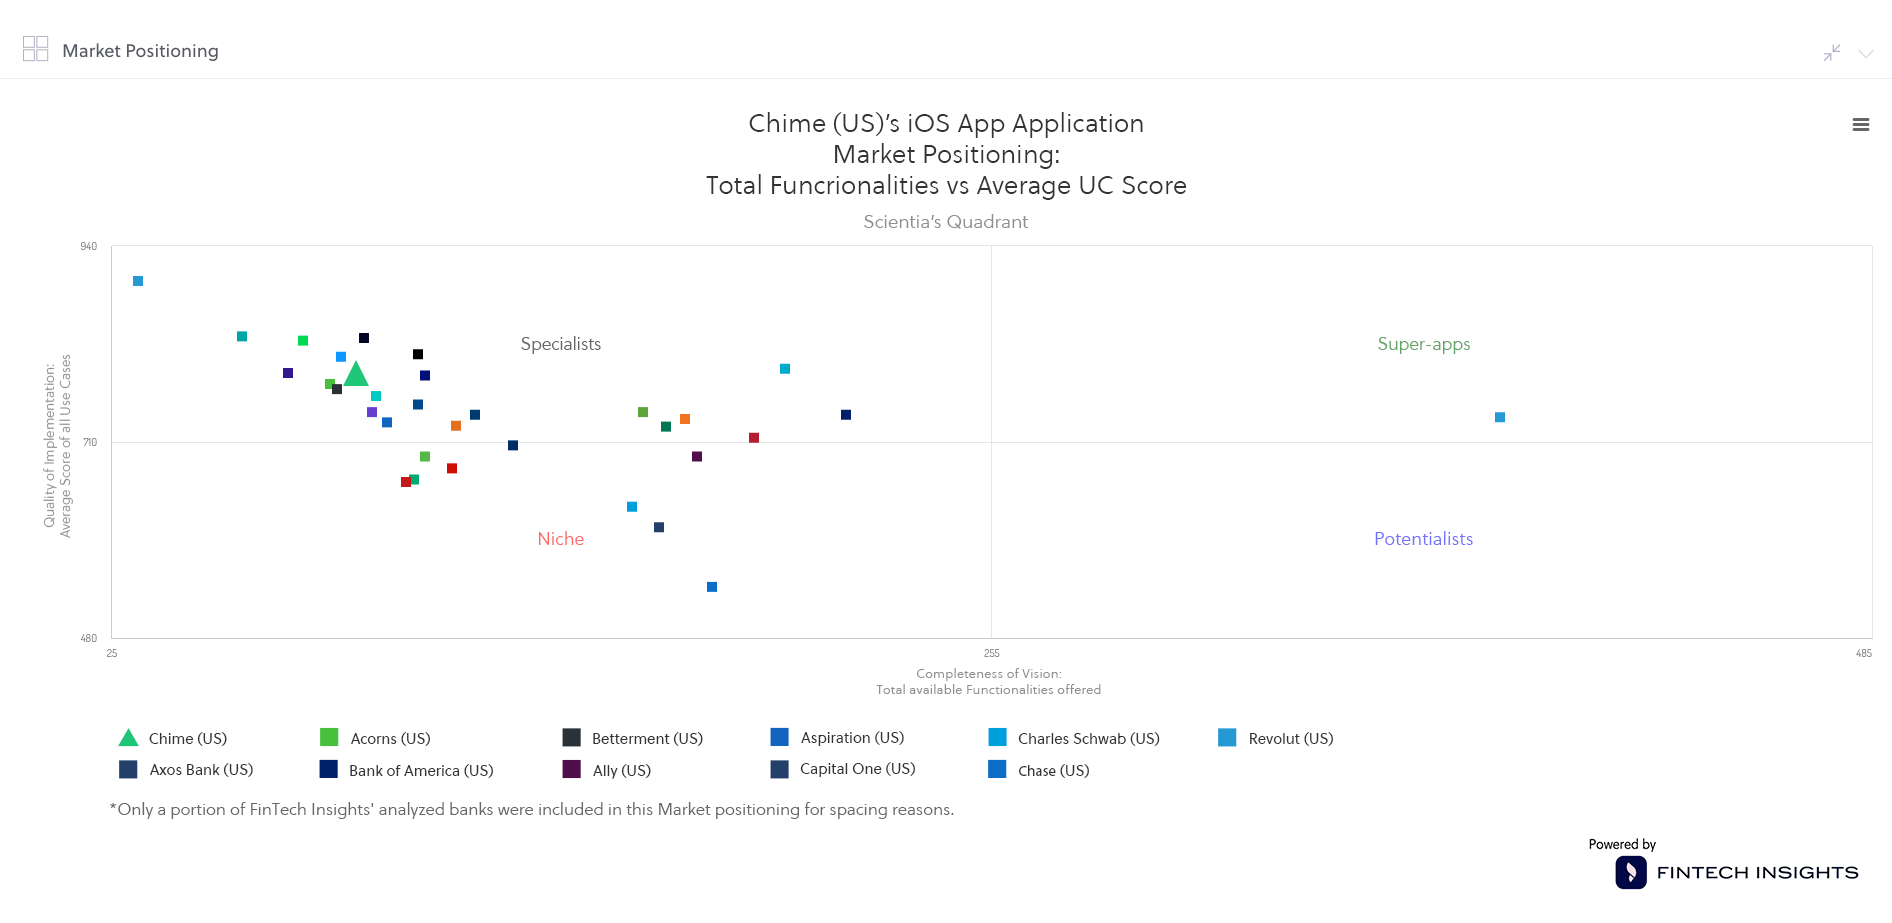 Chime US Market positioning for iOS App